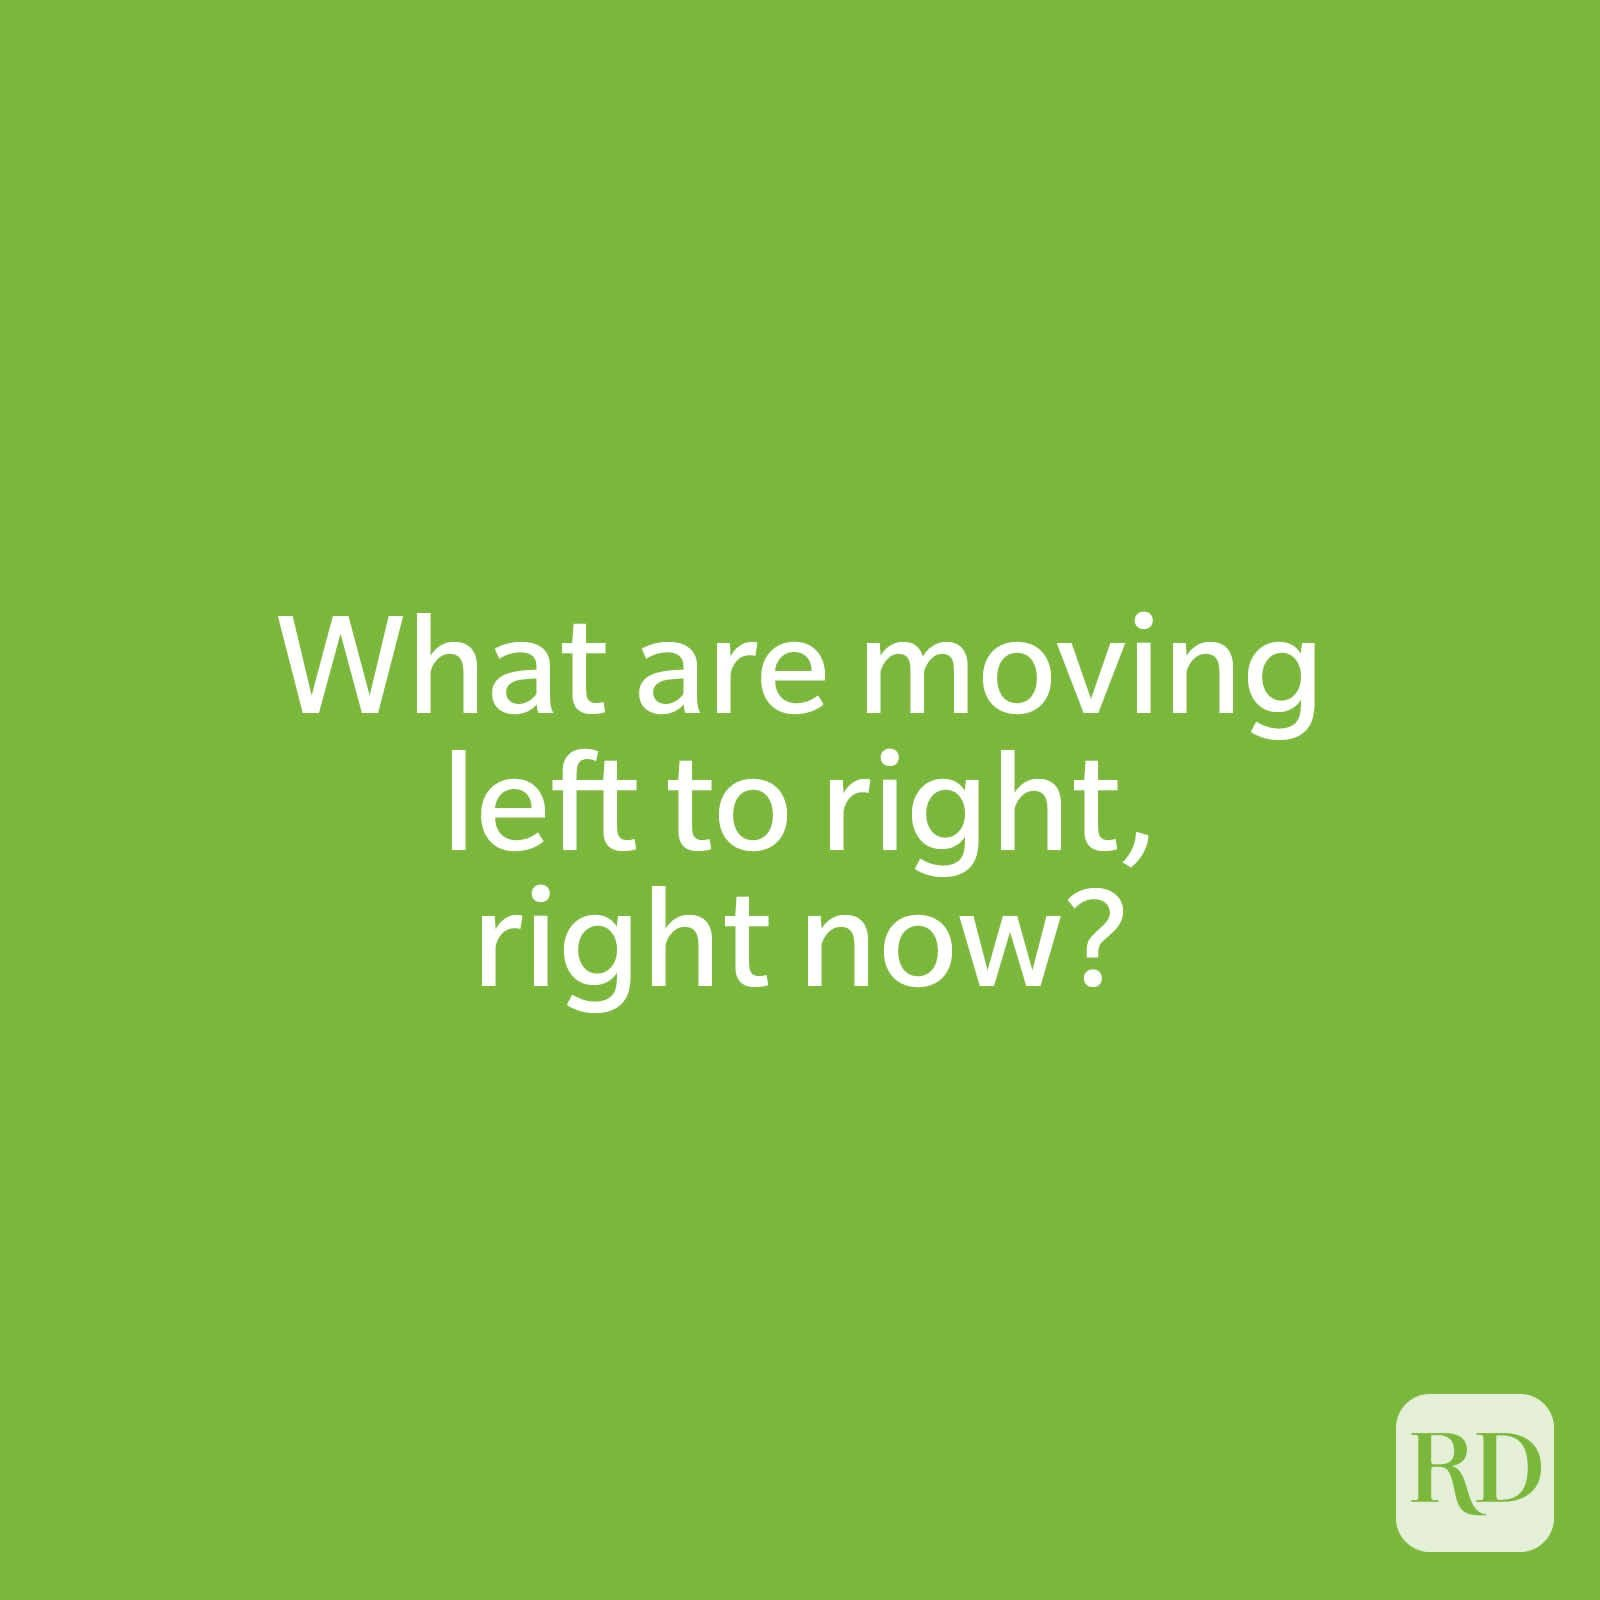 What are moving left to right, right now?